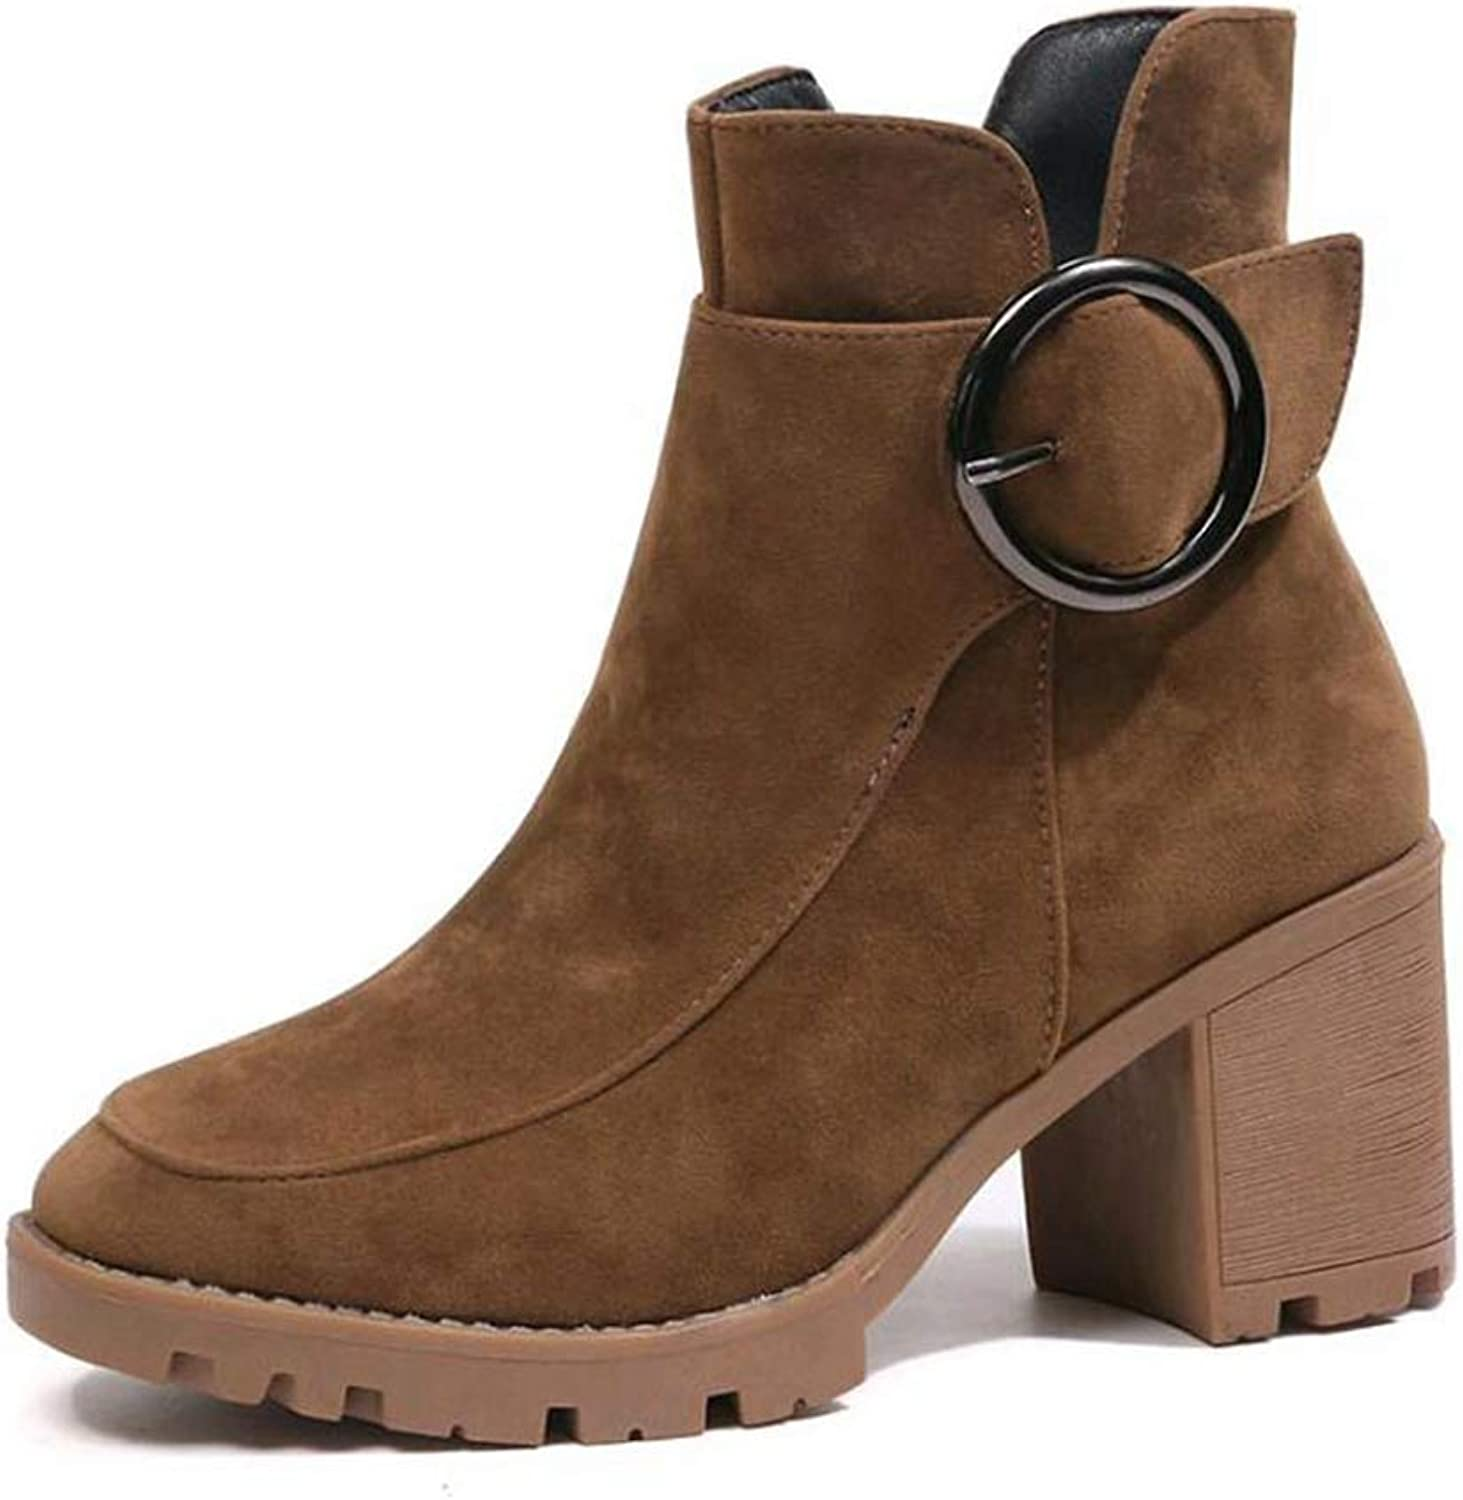 Kyle Walsh Pa Women Autumn Winter Women Boots Solid Zipper European Ladies Suede Leather Fashion Boots